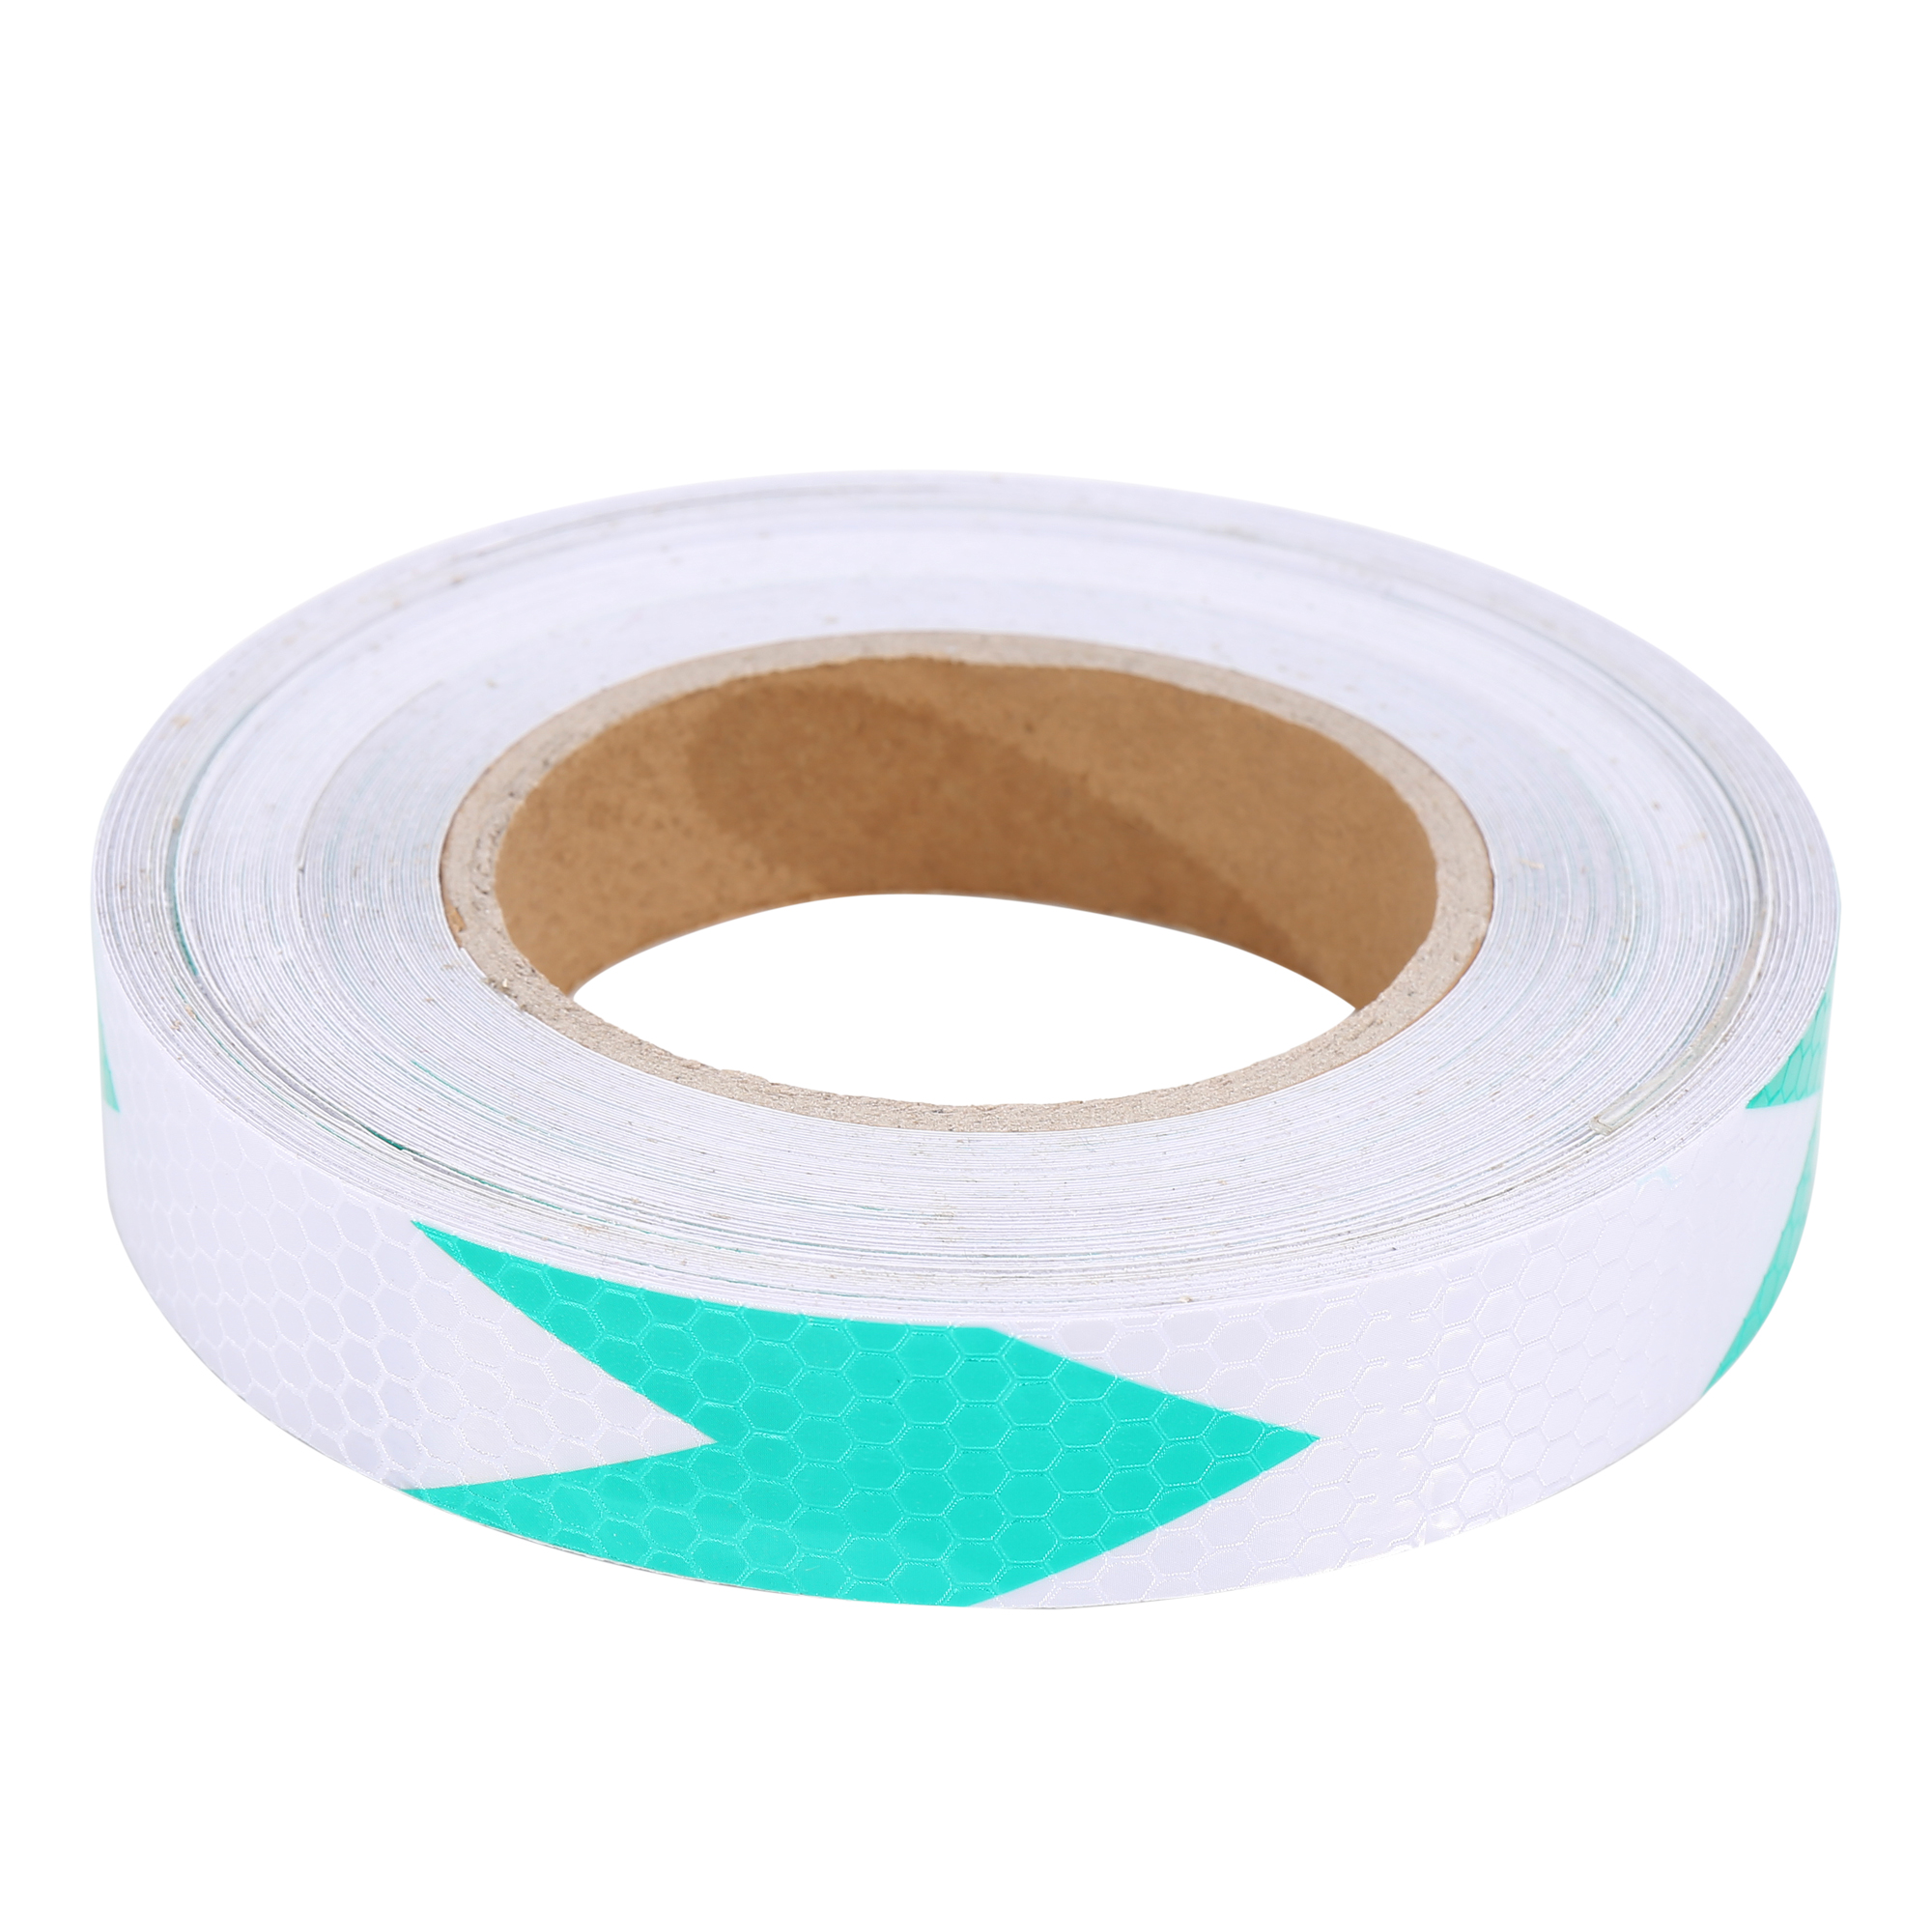 25M Green Sliver Tone Vehicle Arrow Pattern Reflective Sticker Tape Strip - image 2 of 3